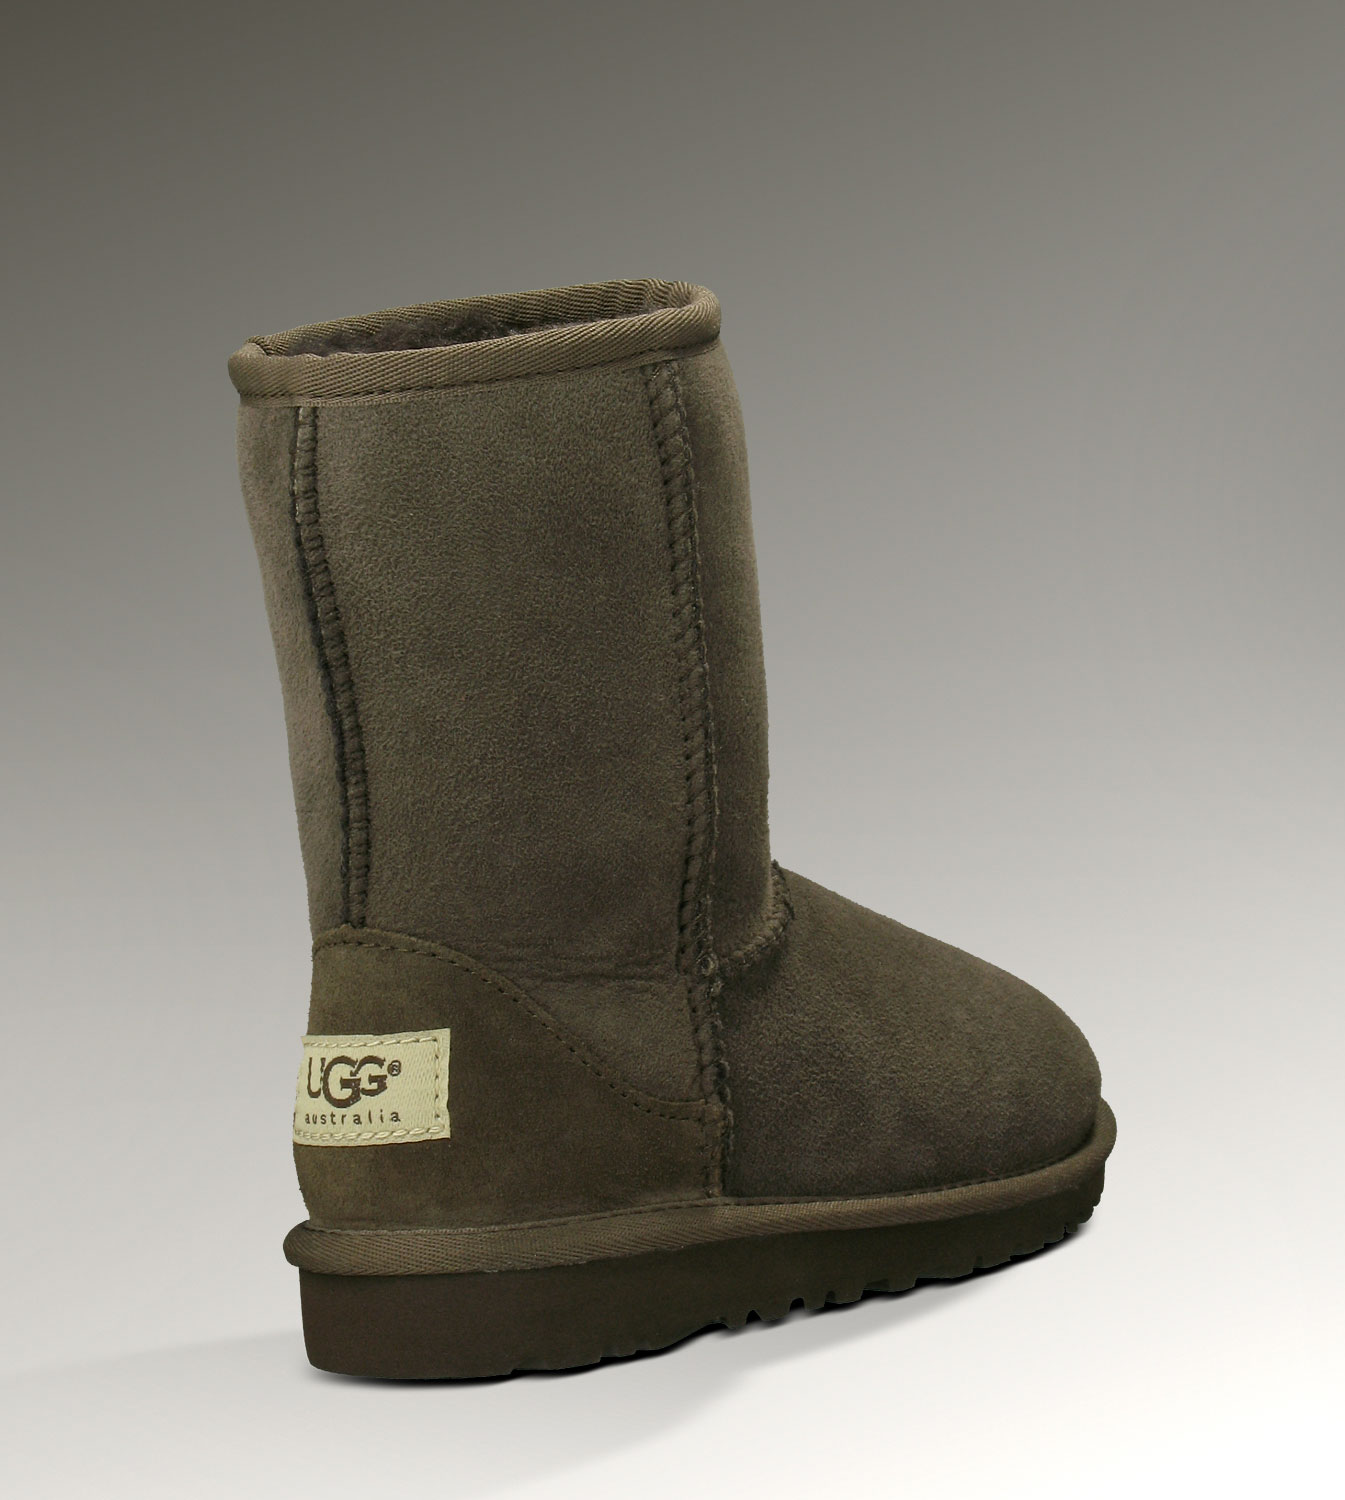 UGG Classic Short 5251 Chocolate Boots